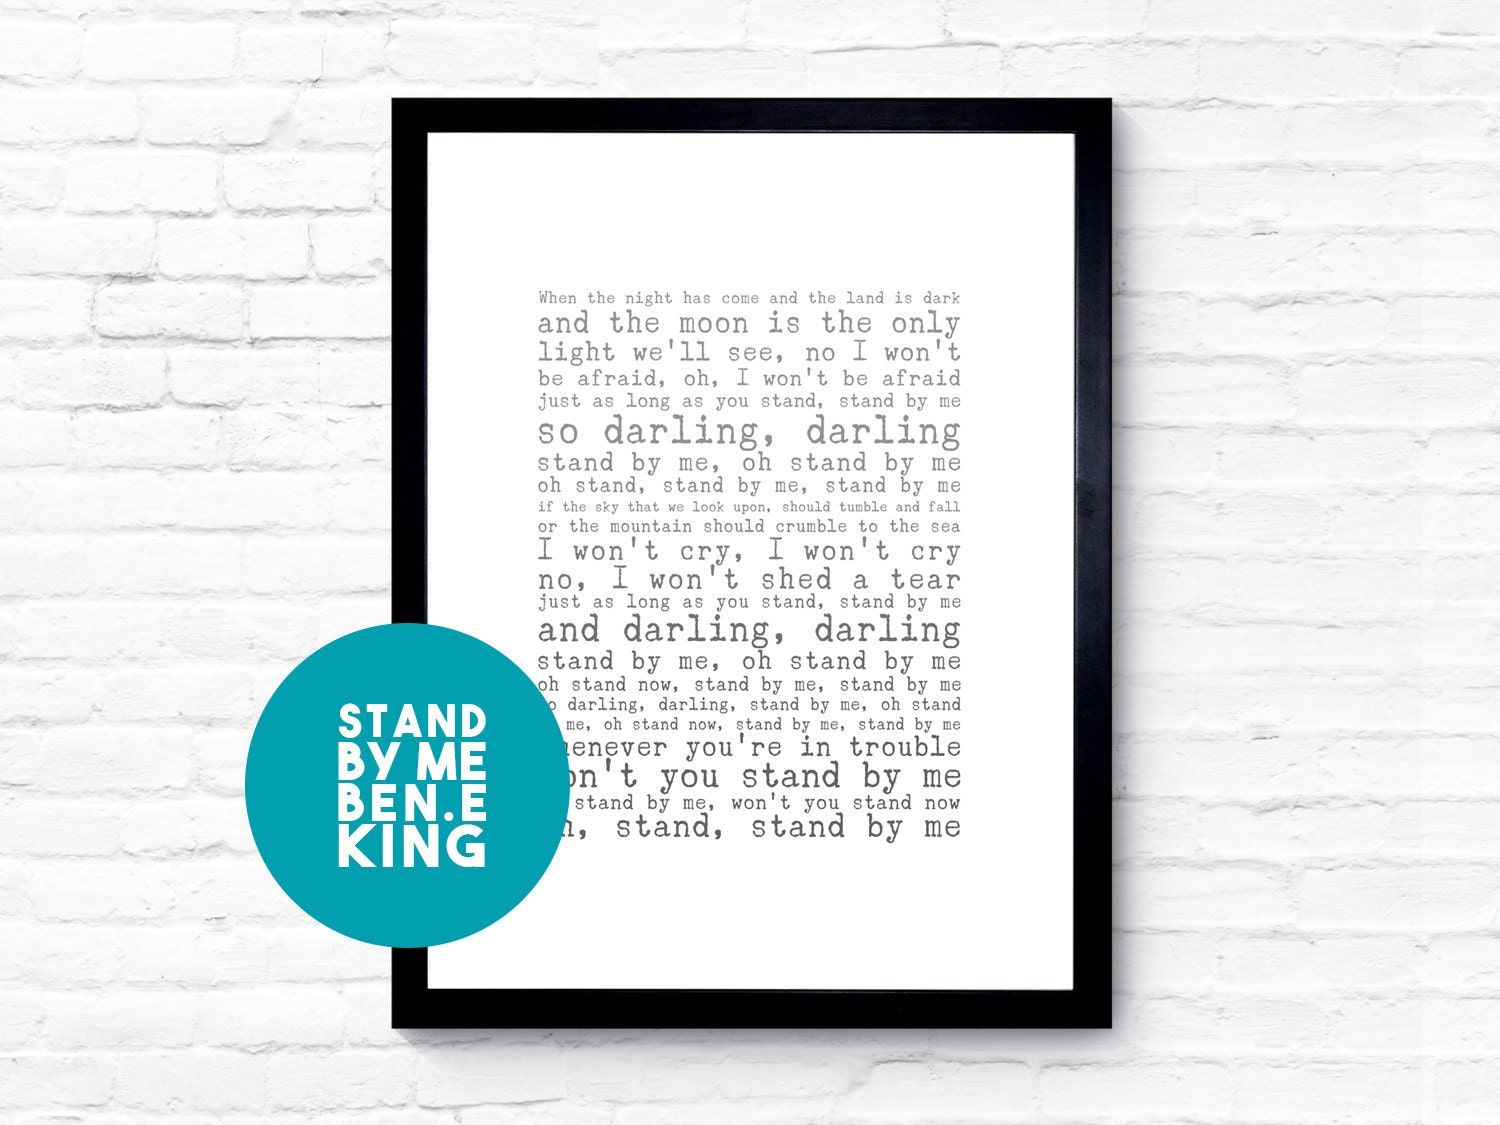 Ben E King Stand By Me Lyrics, Engagement Gift, Anniversary Gift, Song Lyric Print, Personalised Song Lyric Print, Unique Wedding Gift